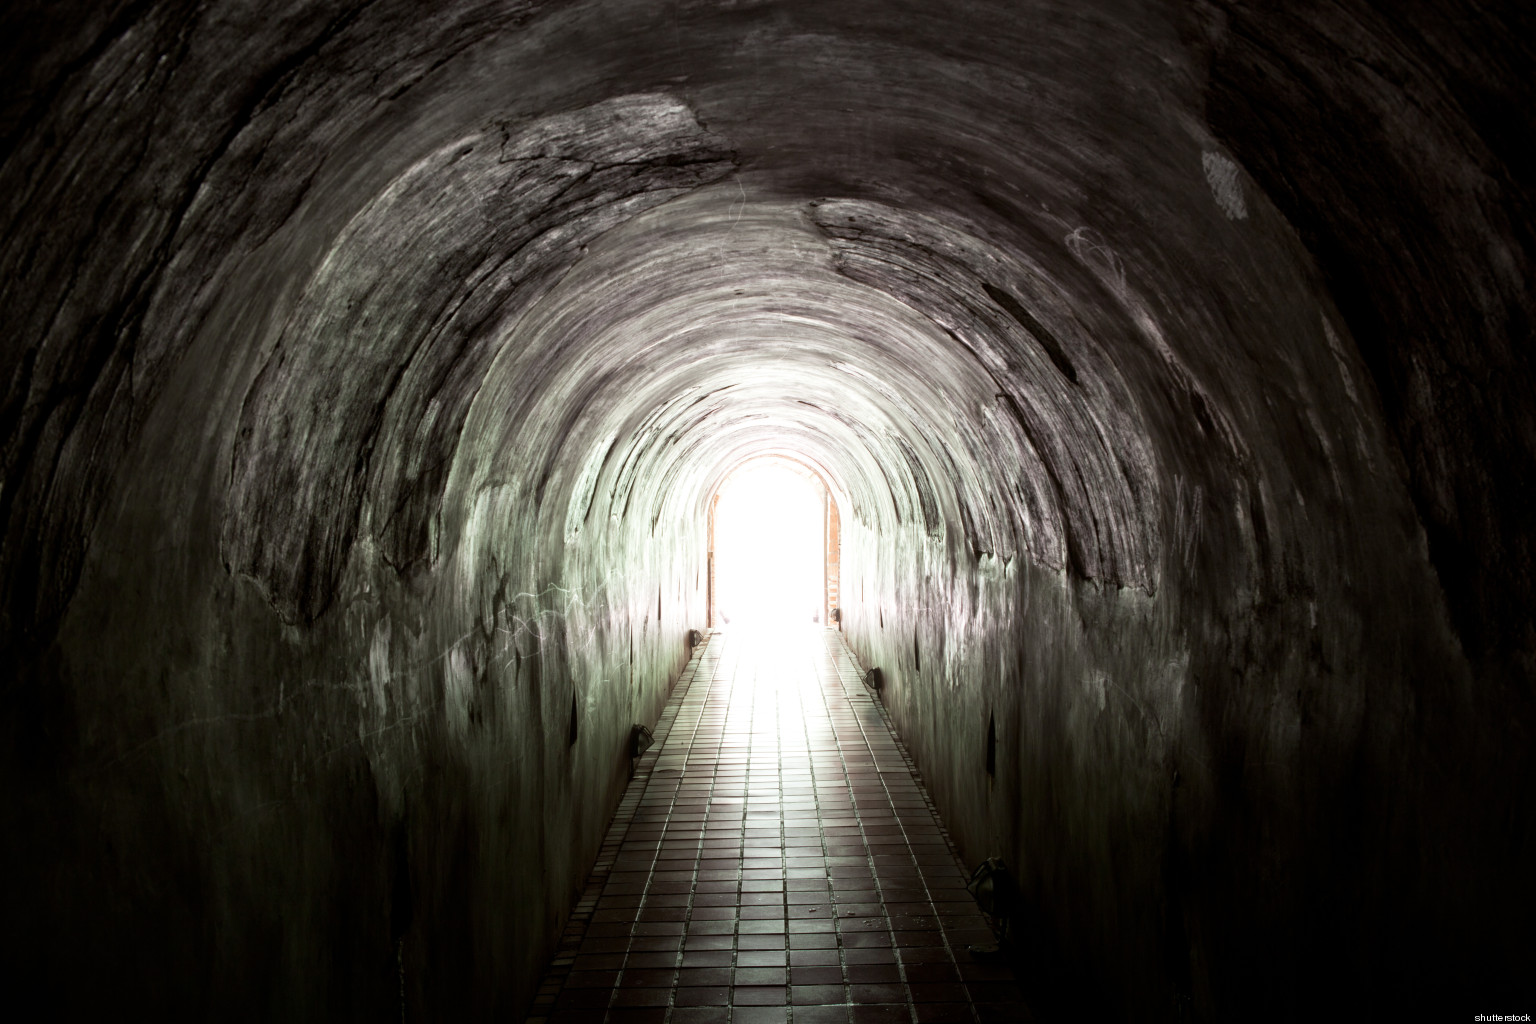 near death experience reveals the theory An out-of-body experience  near-death experiences may include subjective impressions of being outside the physical body,  they concluded maria's story merely reveals the naiveté and the power of wishful thinking from obe researchers seeking a paranormal explanation.